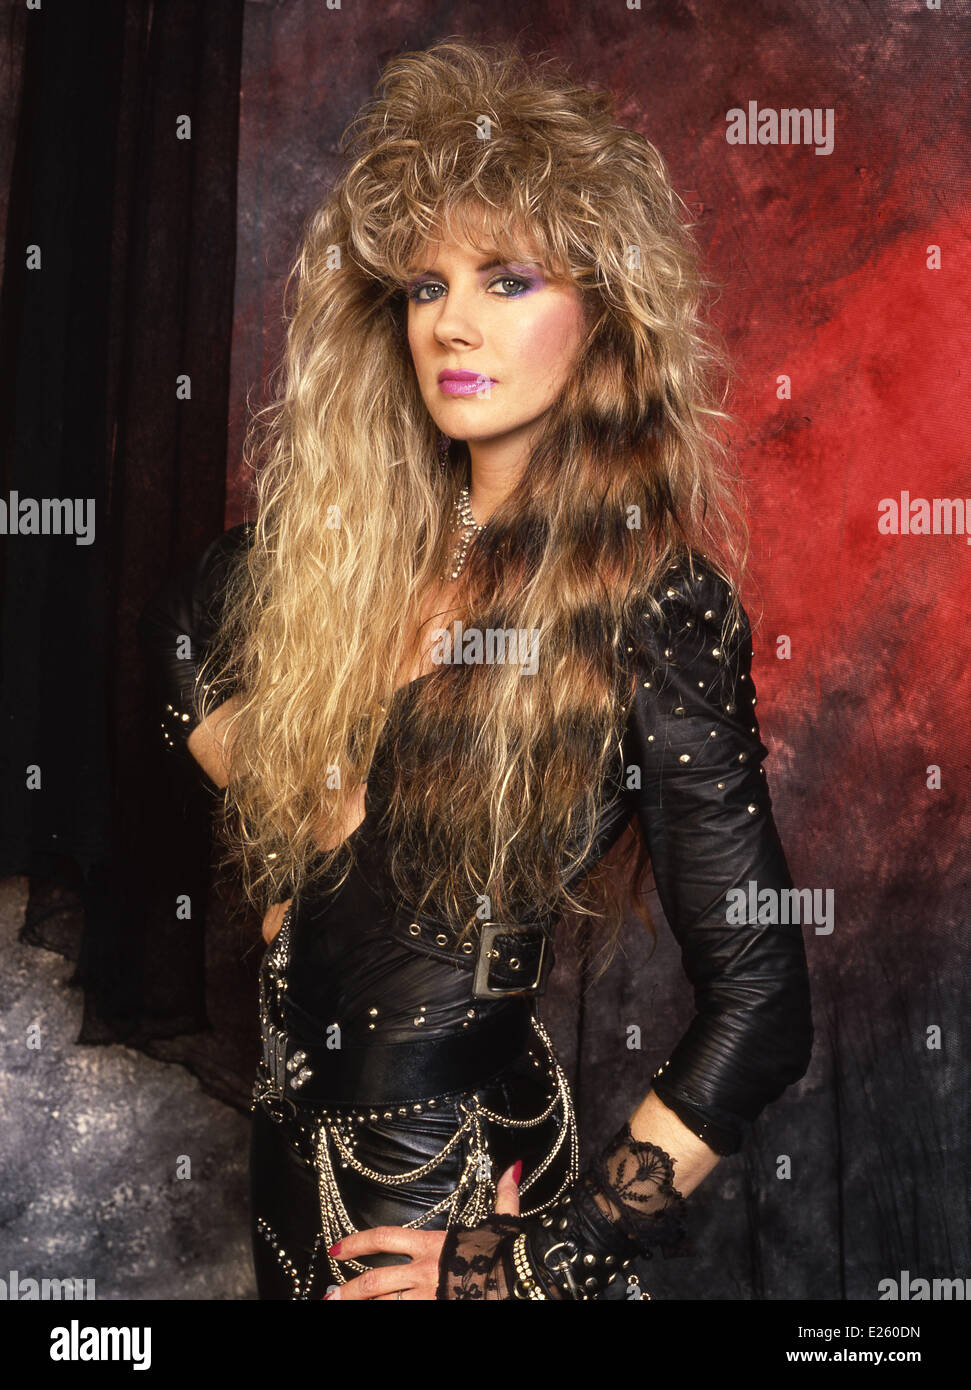 Jan Kuehnemund Founding Member And Lead Guitarist For The All Female Glam Metal Band Vixen Featuring Where London United Kingdom When 12